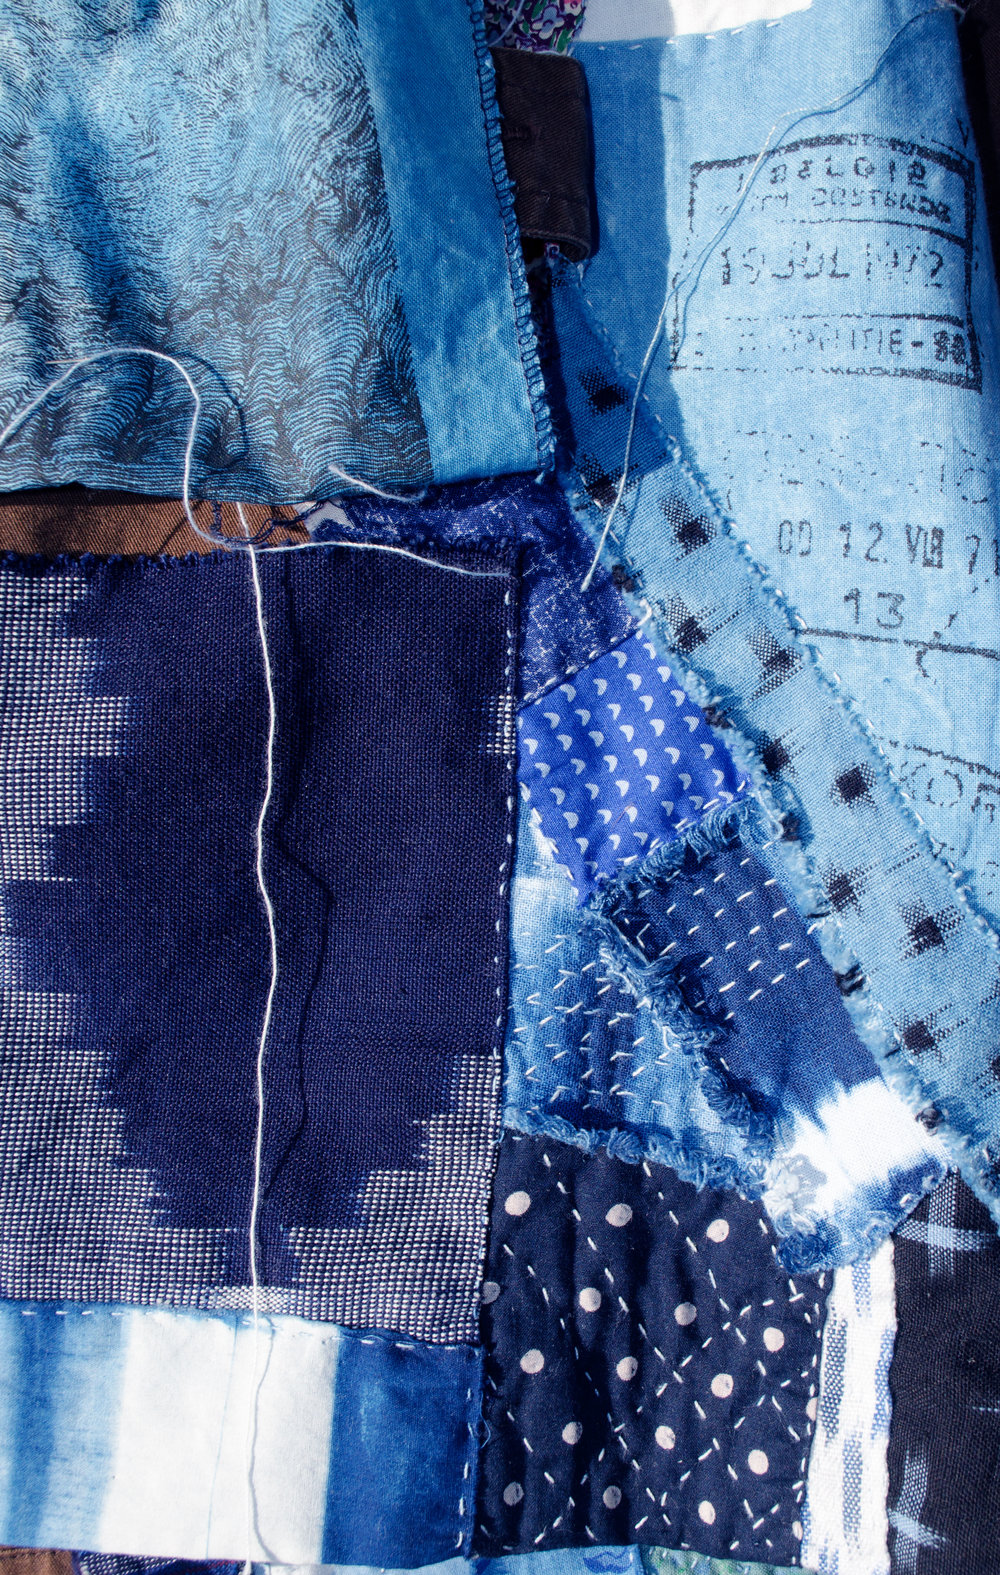 Boro inspired stitching with scraps of indigo